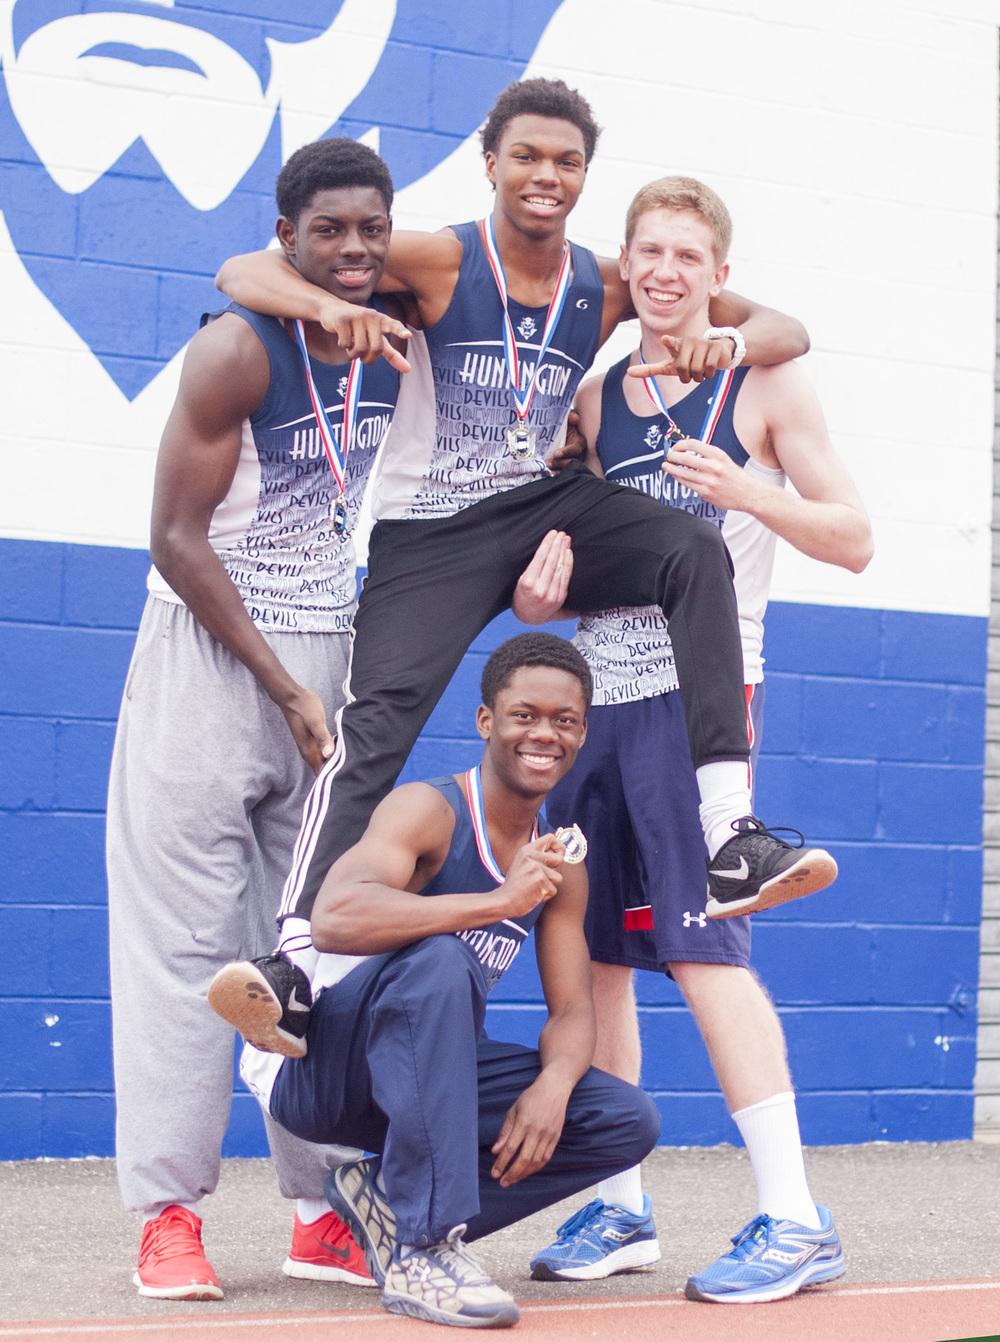 The Huntington Blue Devils 4x400-meter relay team – from left, back row, Infinite Tucker, Kyree Johnson and Shane McGuire; and Lawrence Leake, kneeling – took home a national championship on March 13 during the New Balance Nationals Indoor meet at the Armory in Manhattan.